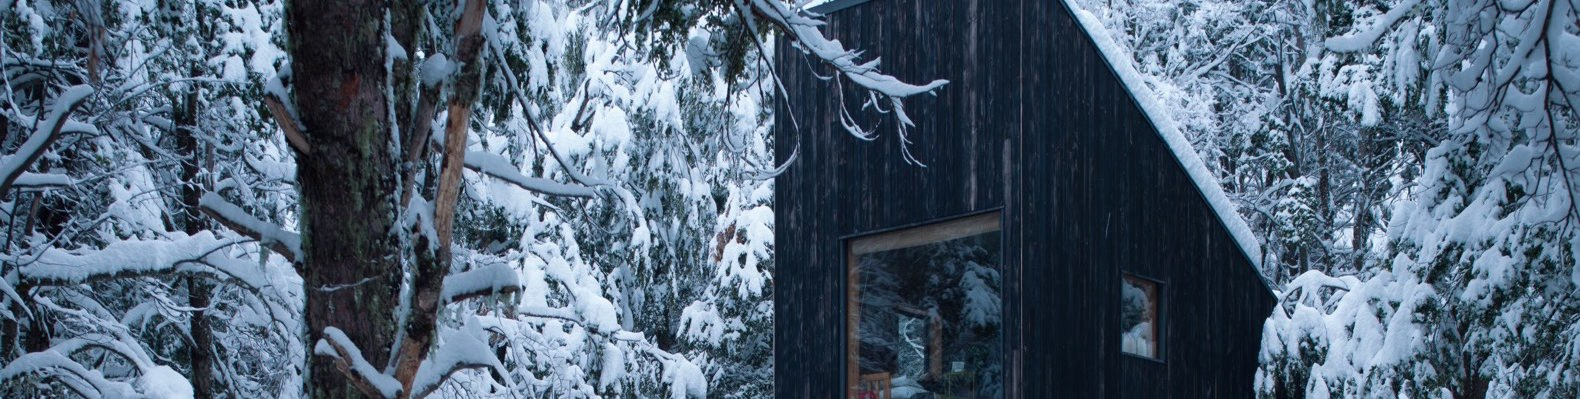 cropped close-up of black timber cabin in a snowy forest